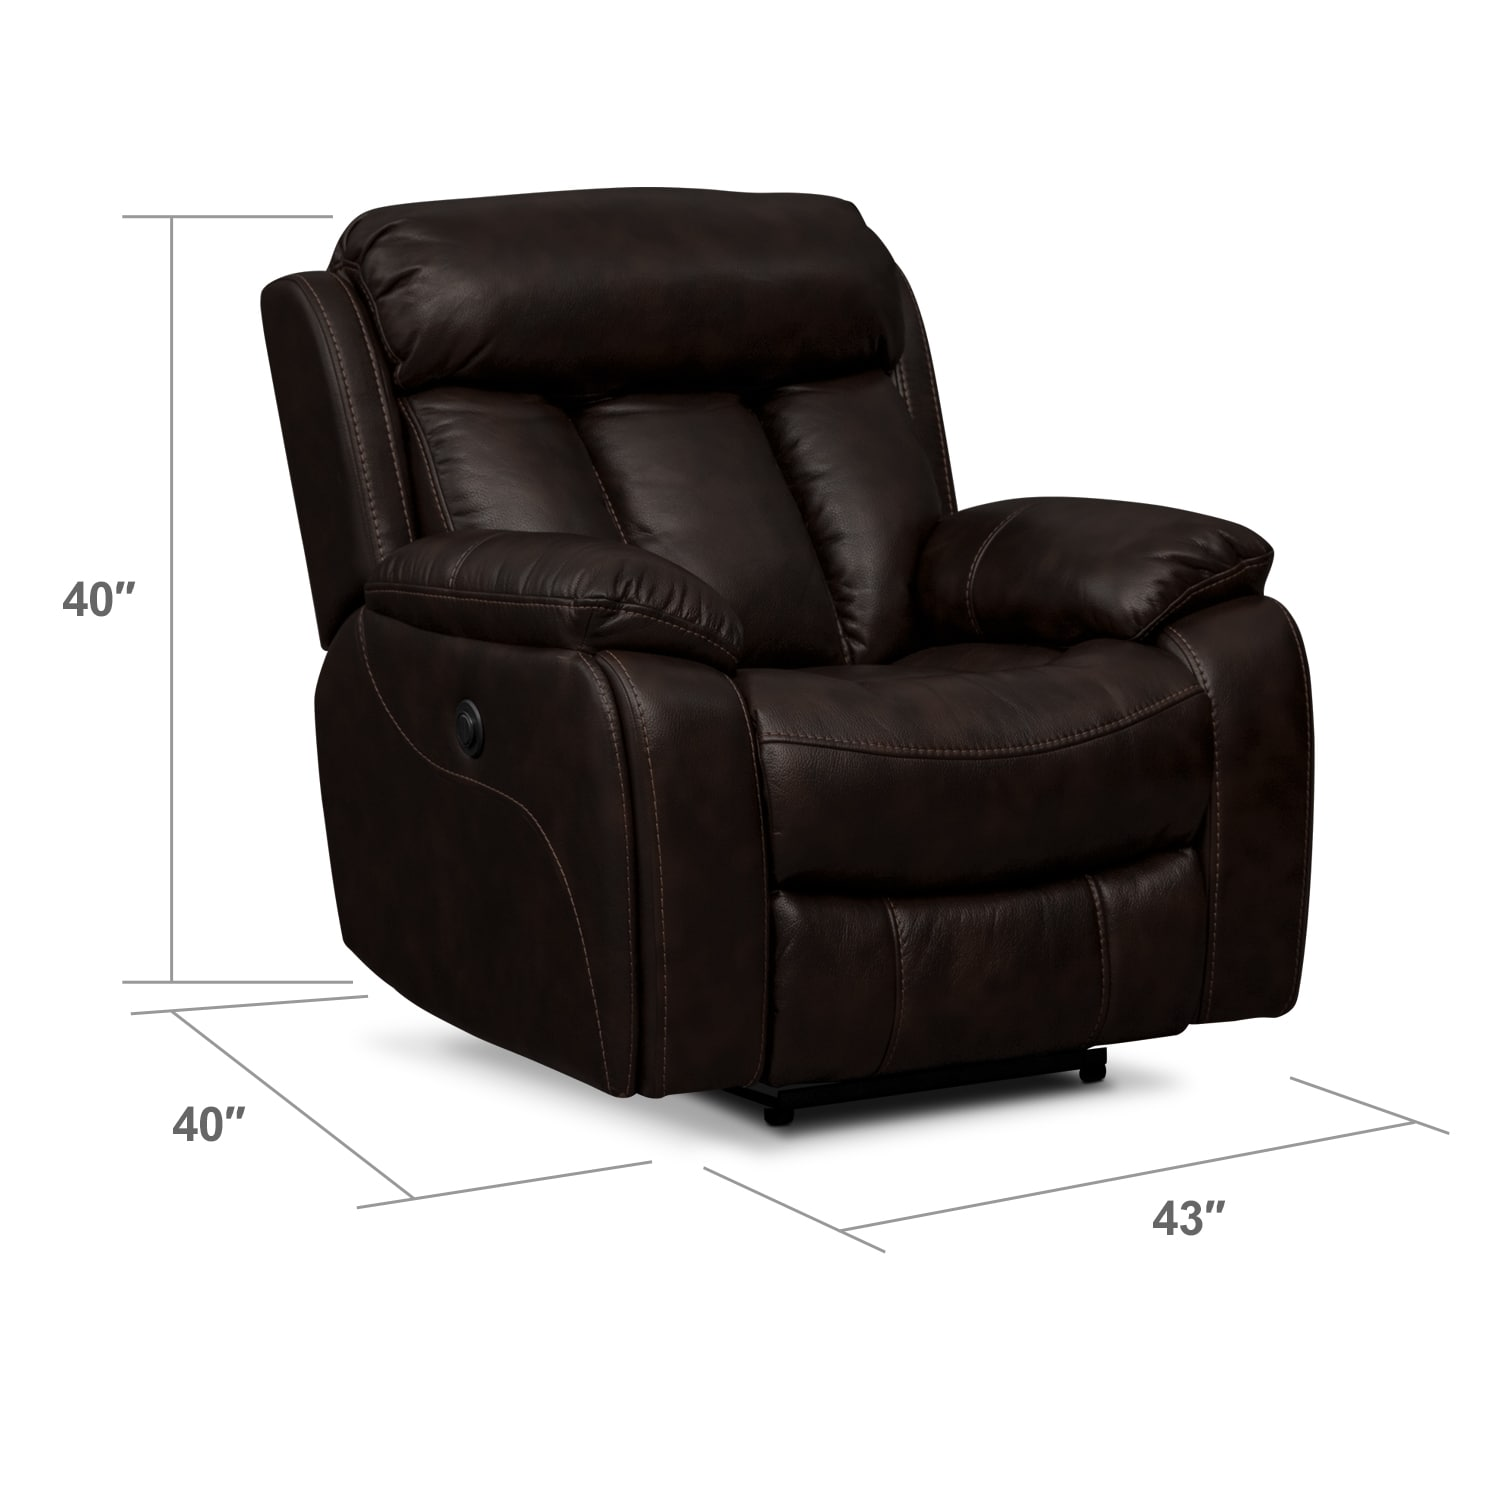 Living Room Furniture - Diablo II Power Recliner